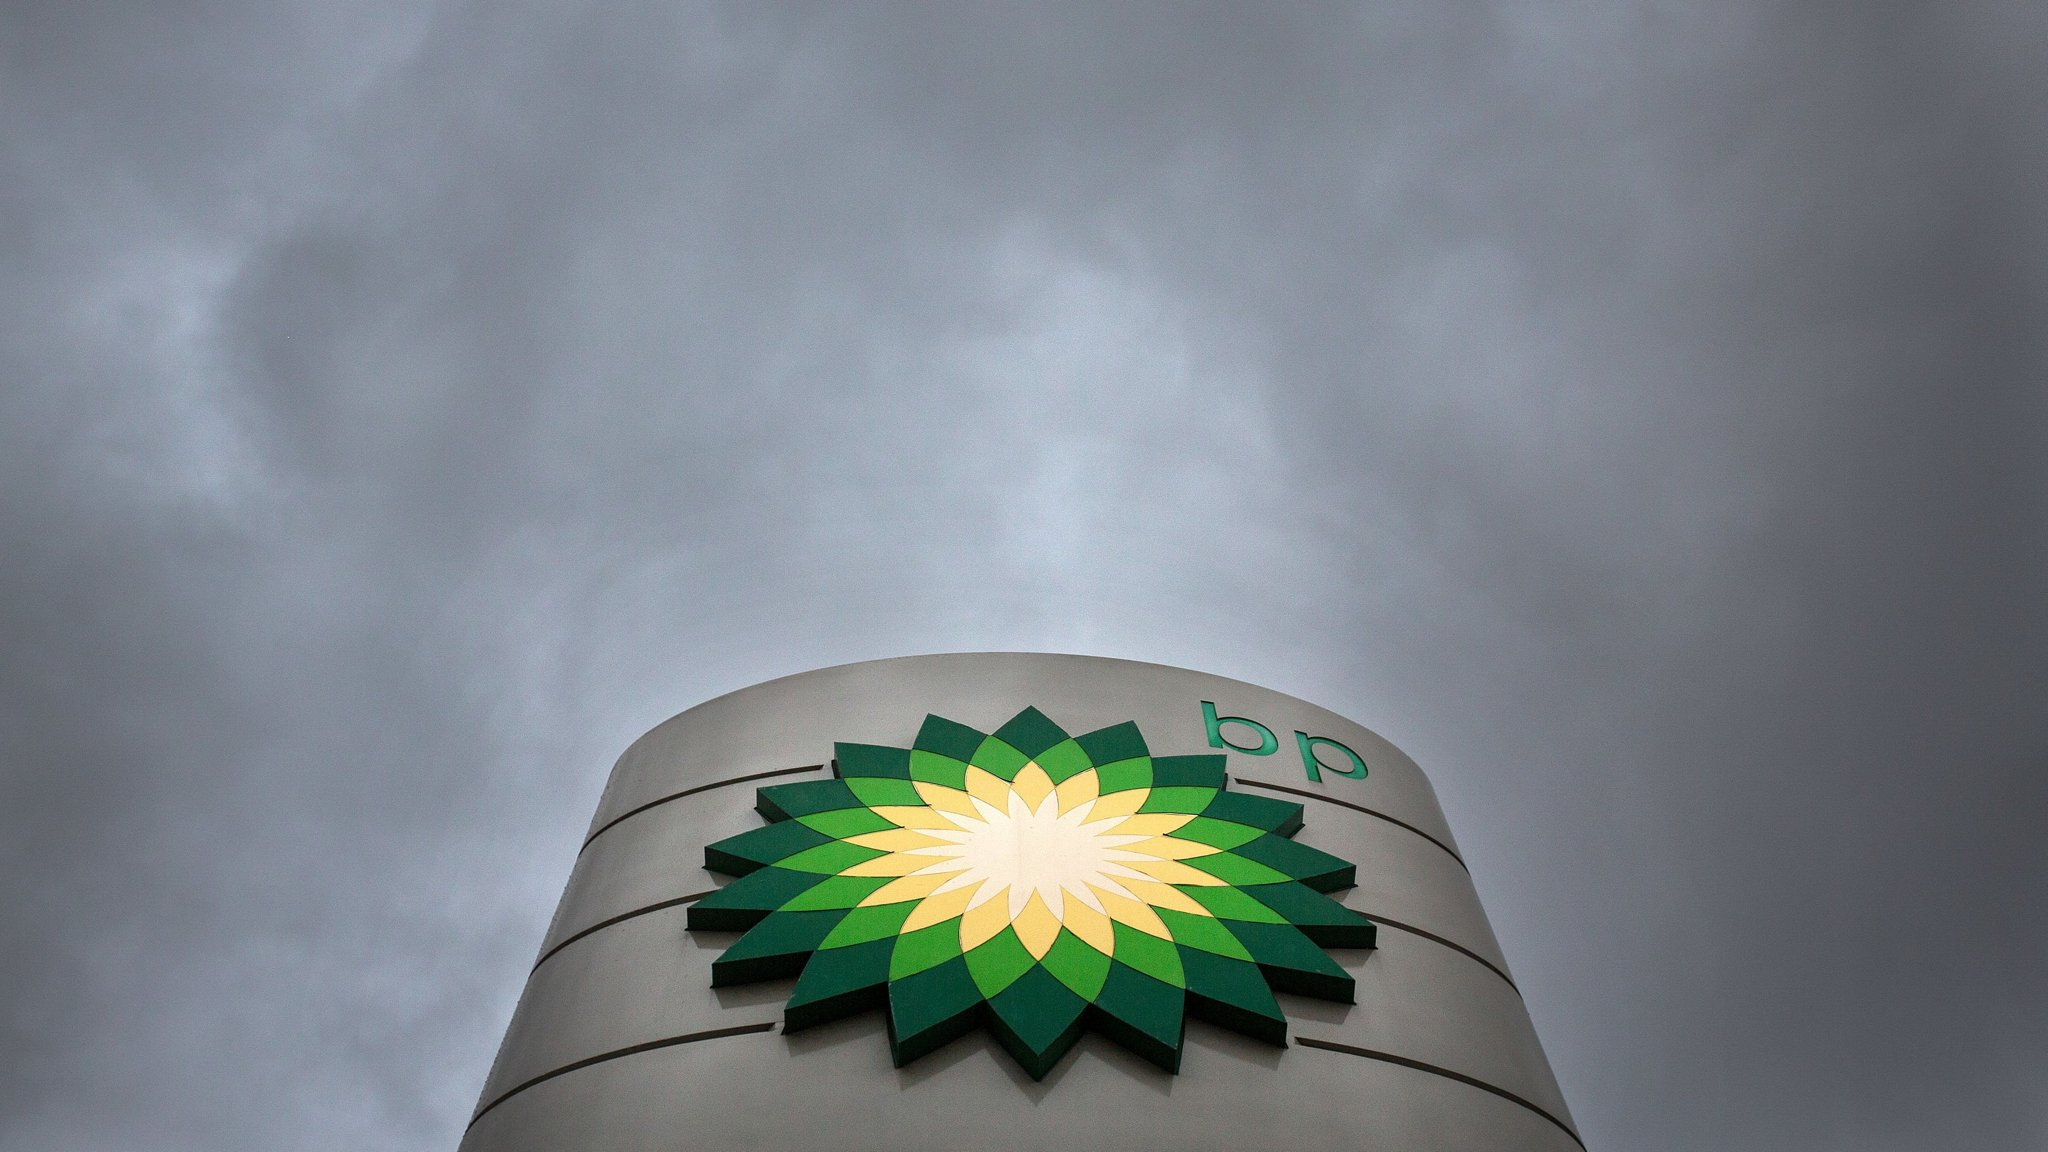 bp unethical business practices